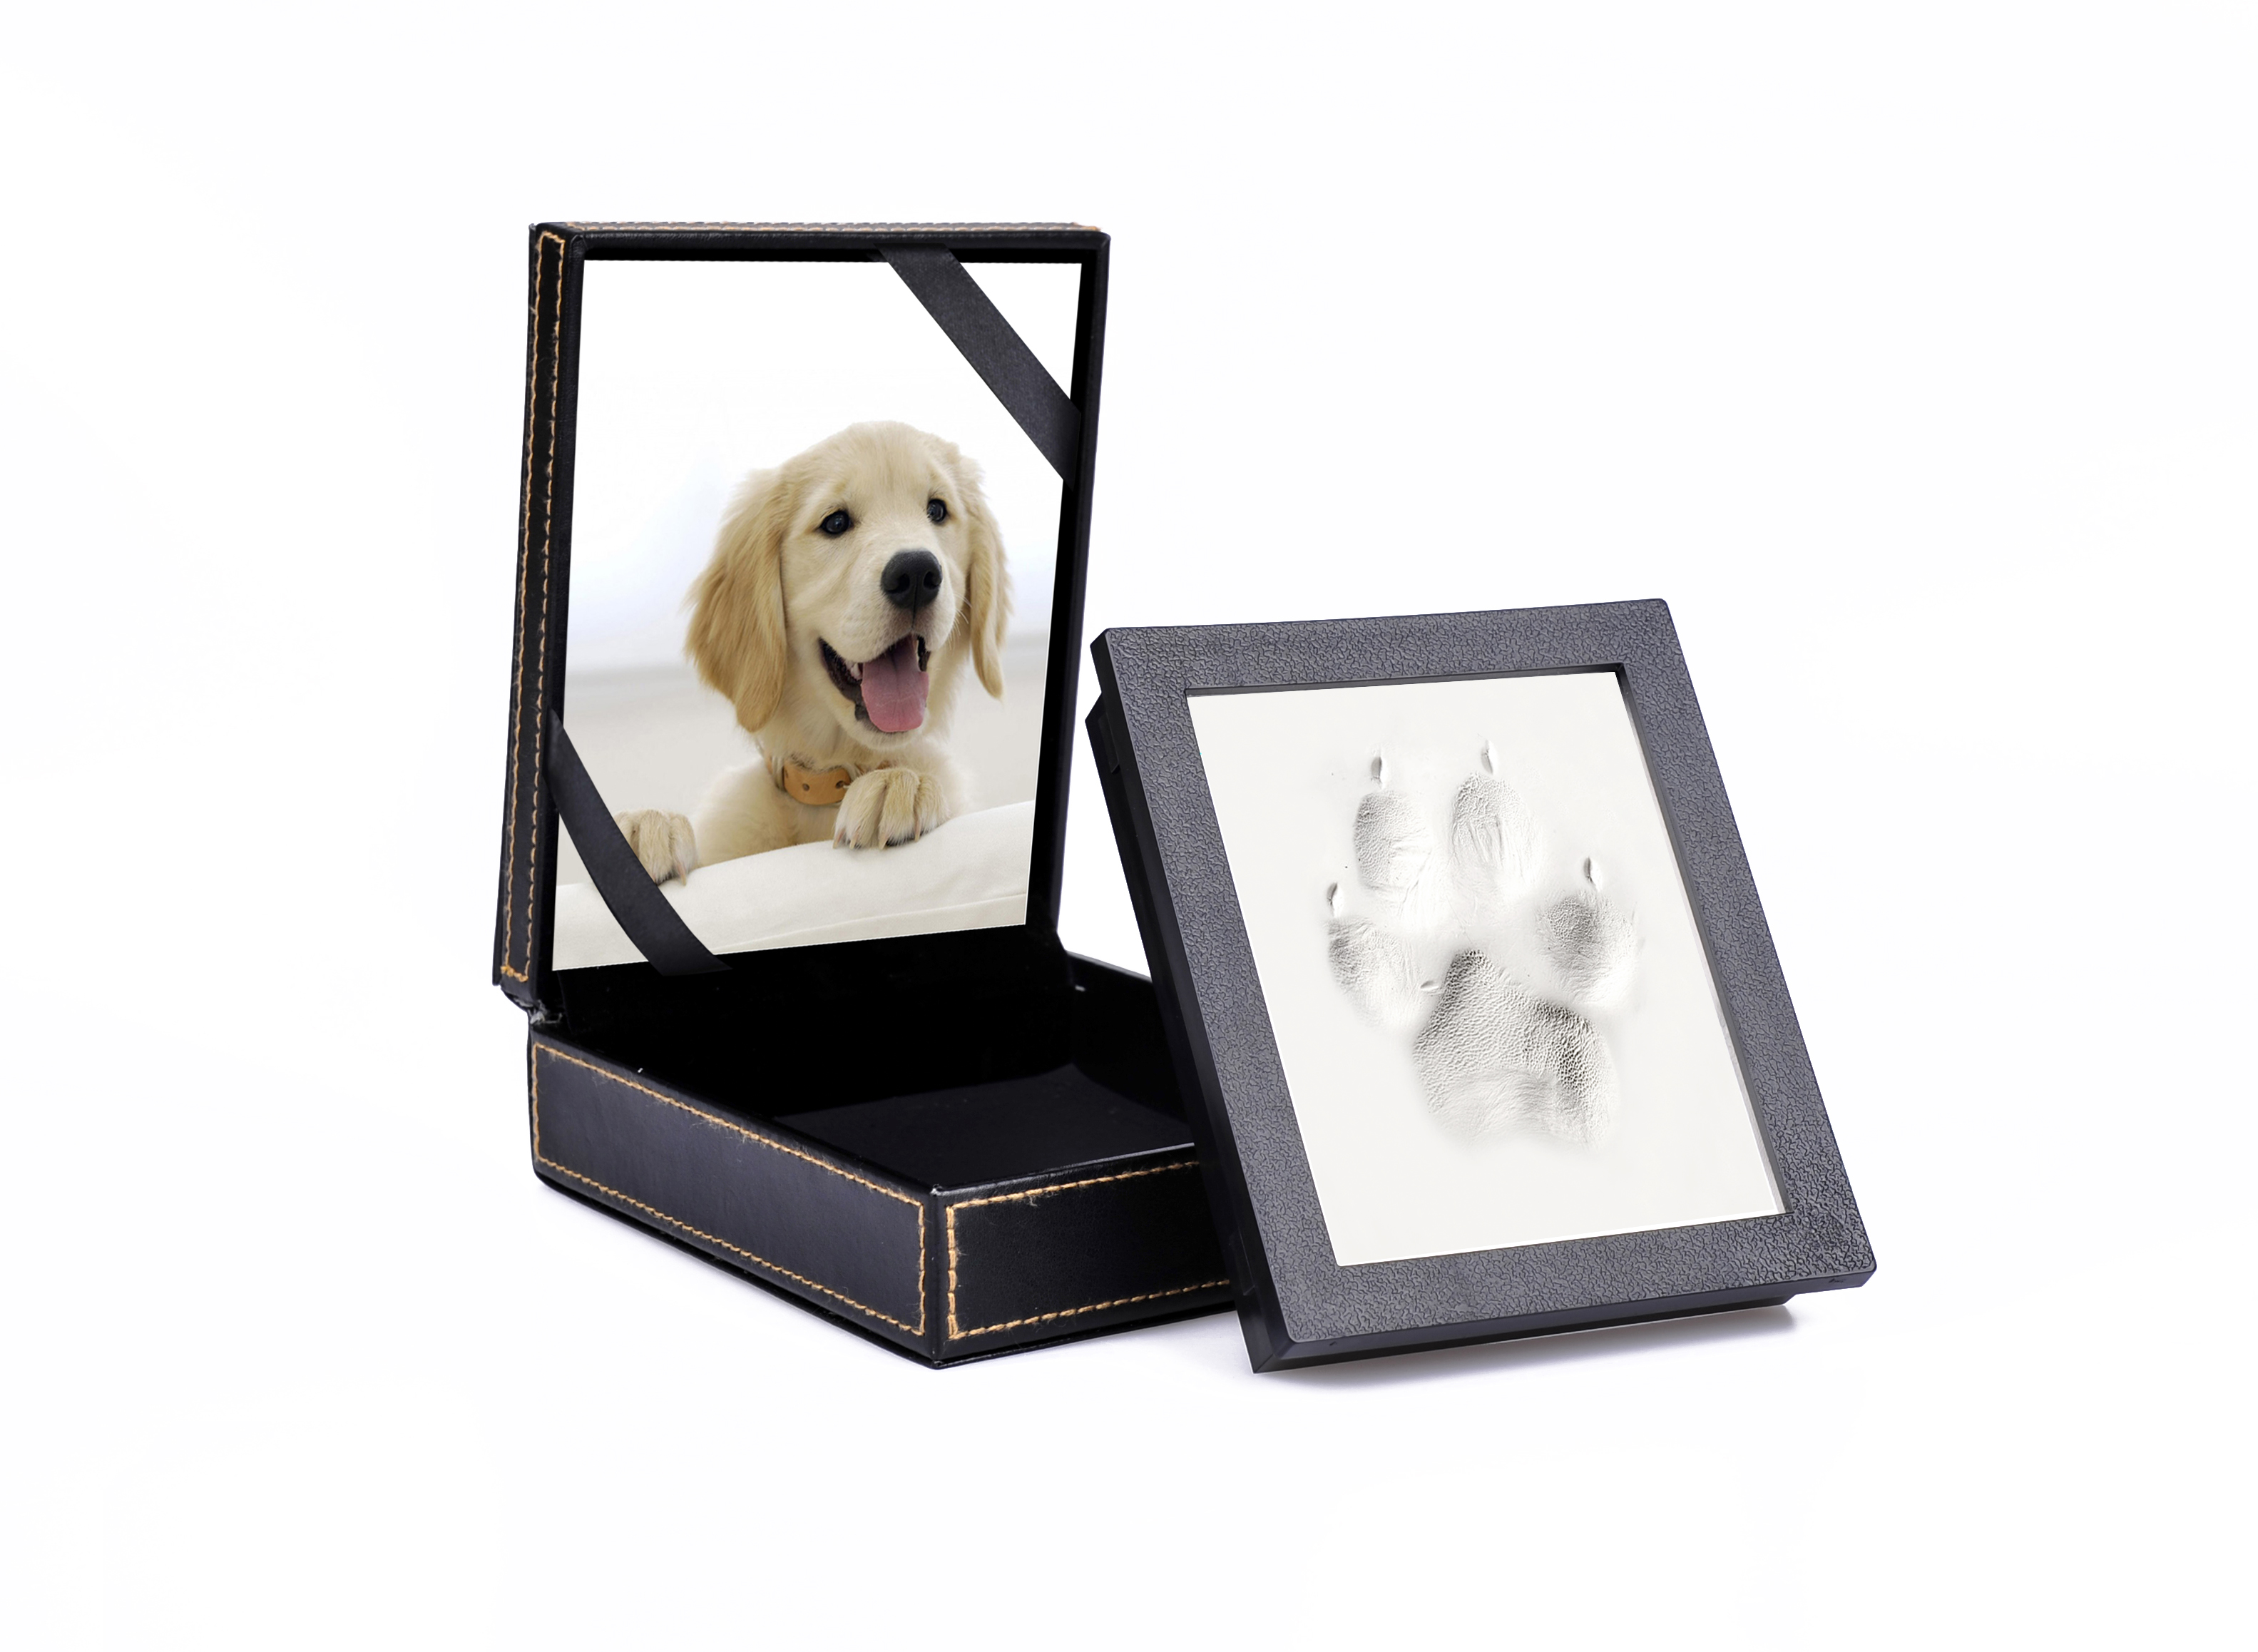 Pet Picture Frame and Paw Print Kit, Perfect Keepsake Gift for Pet Owners, Great For Dog or Cat Paws Print Clay Kits